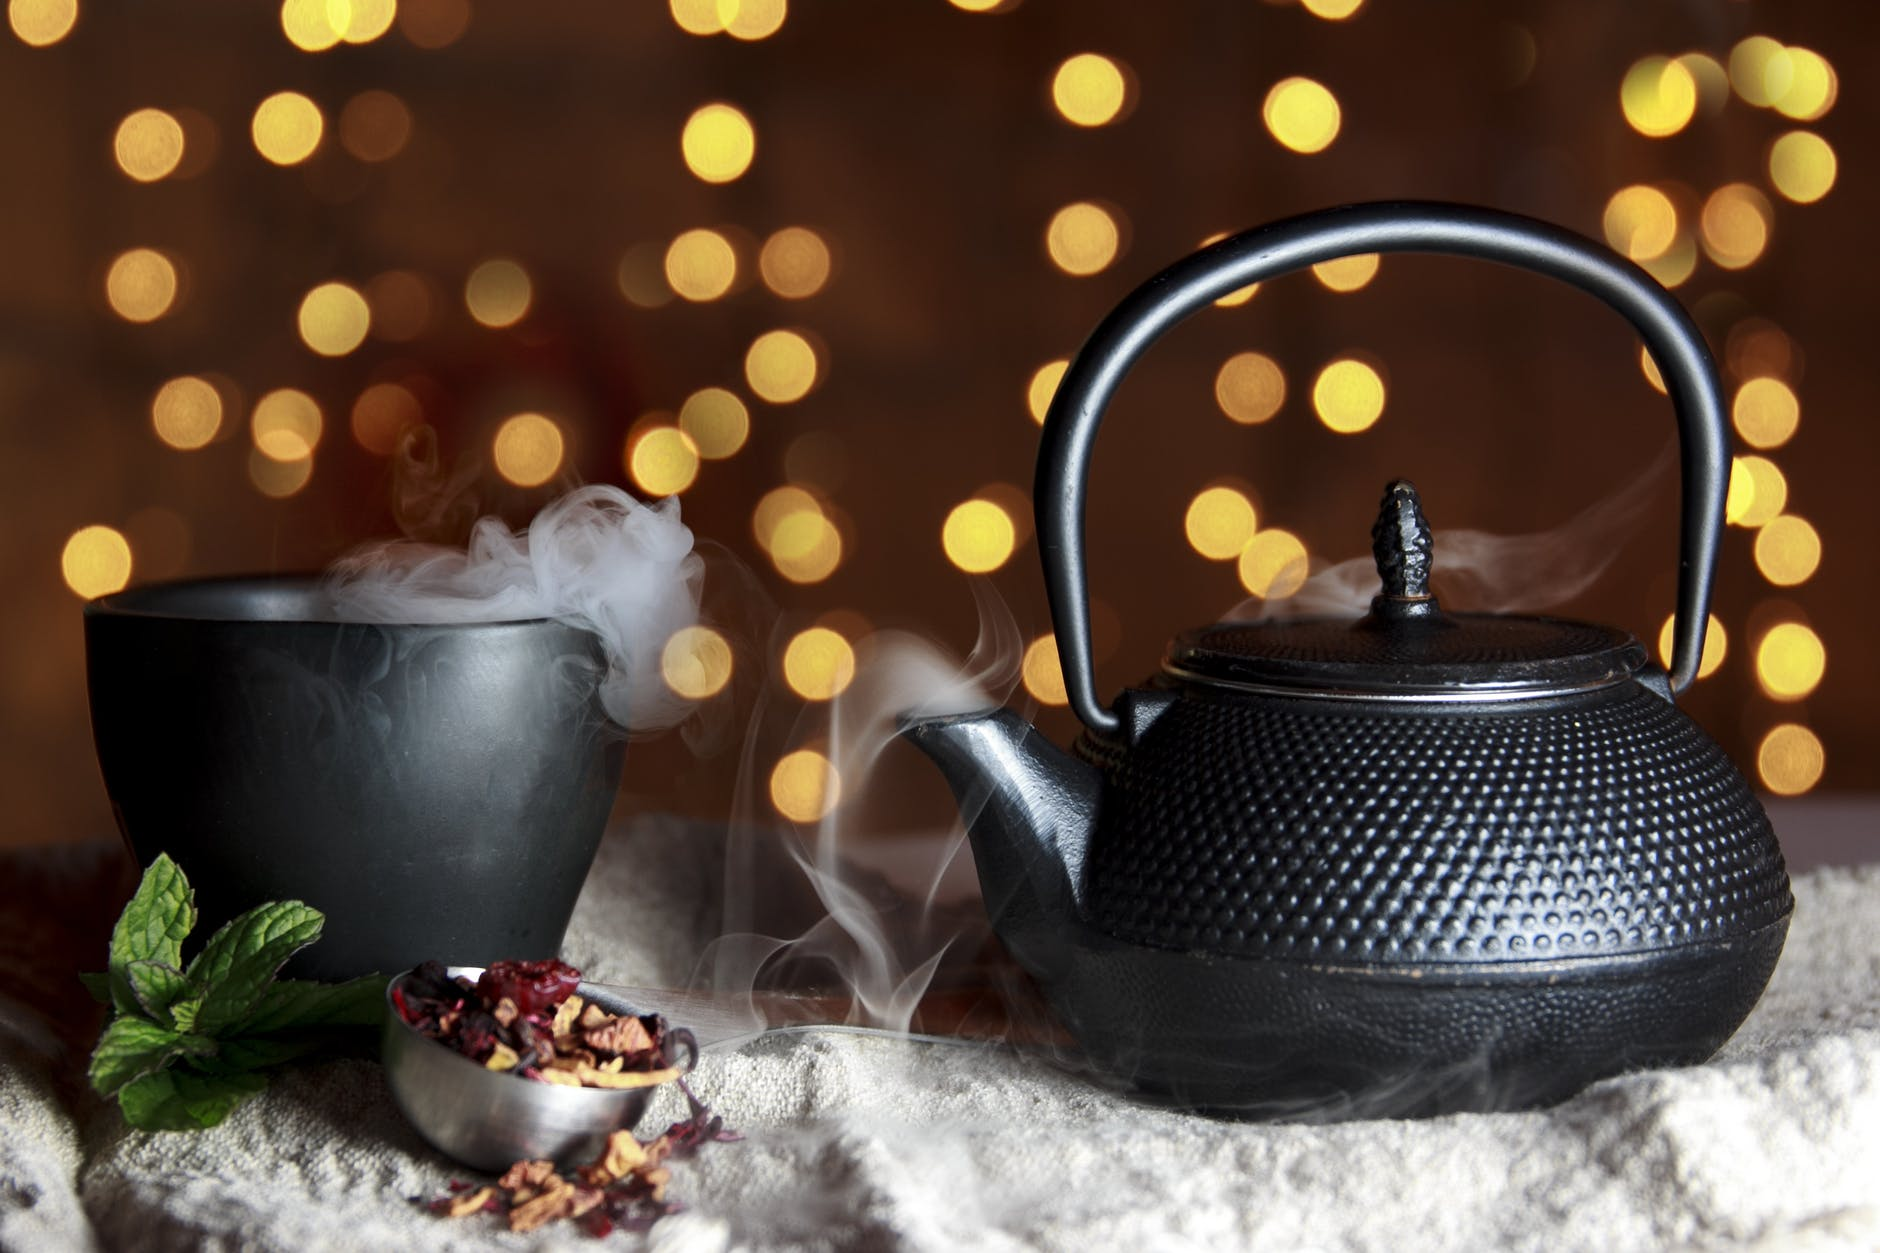 Kettle smokes next to a hot drink.